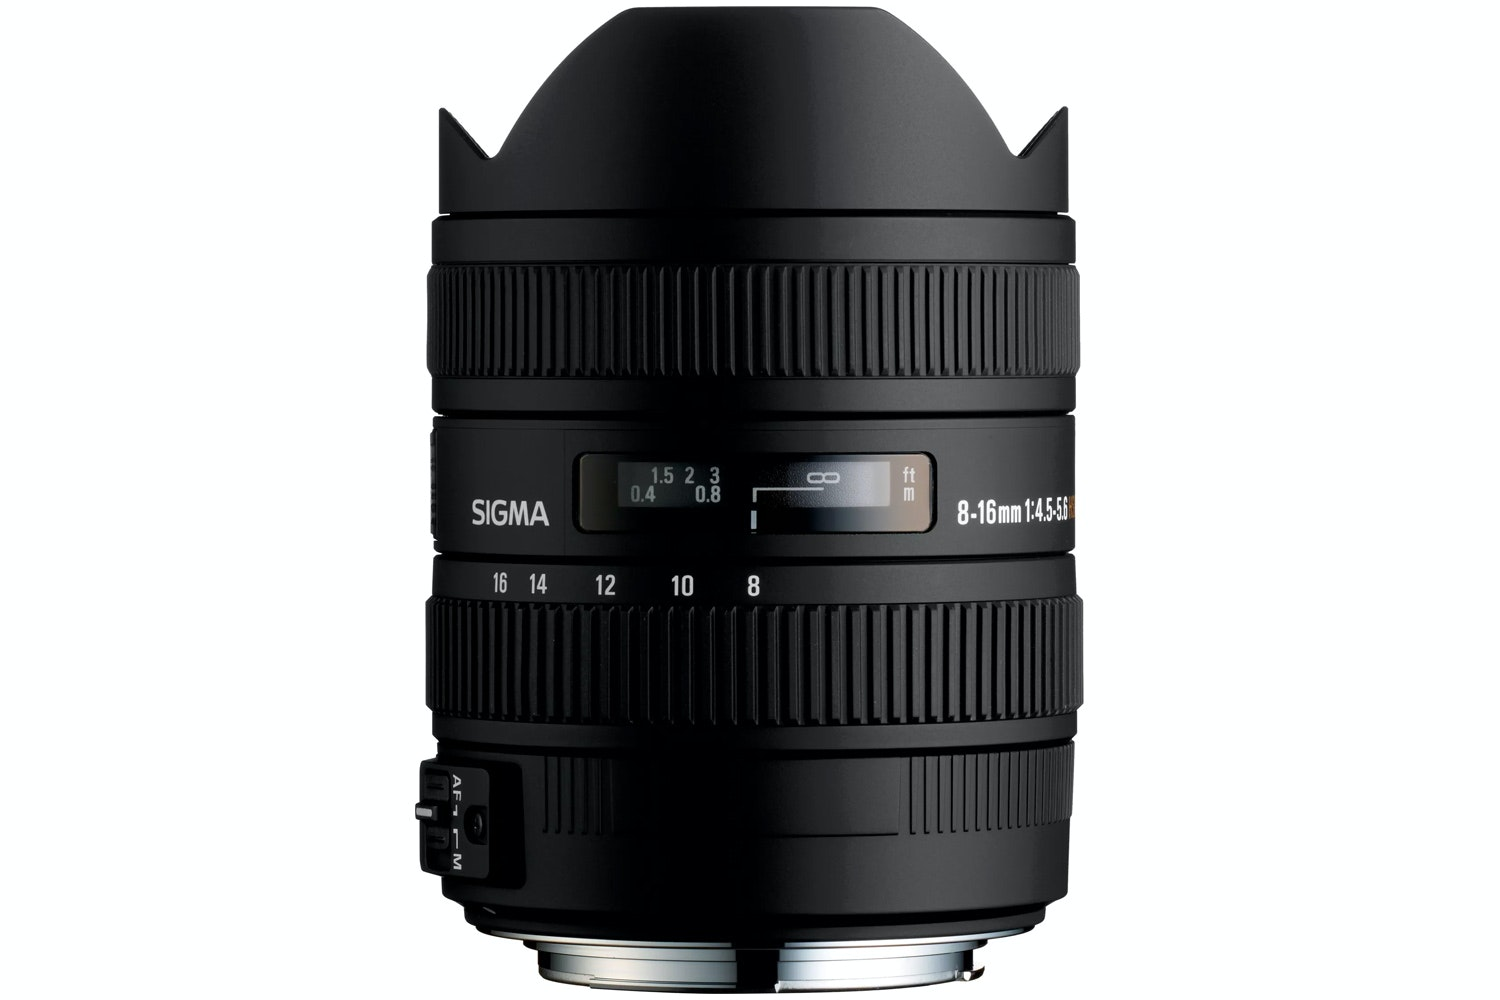 Sigma 8-16mm DC HSM lens for Nikon